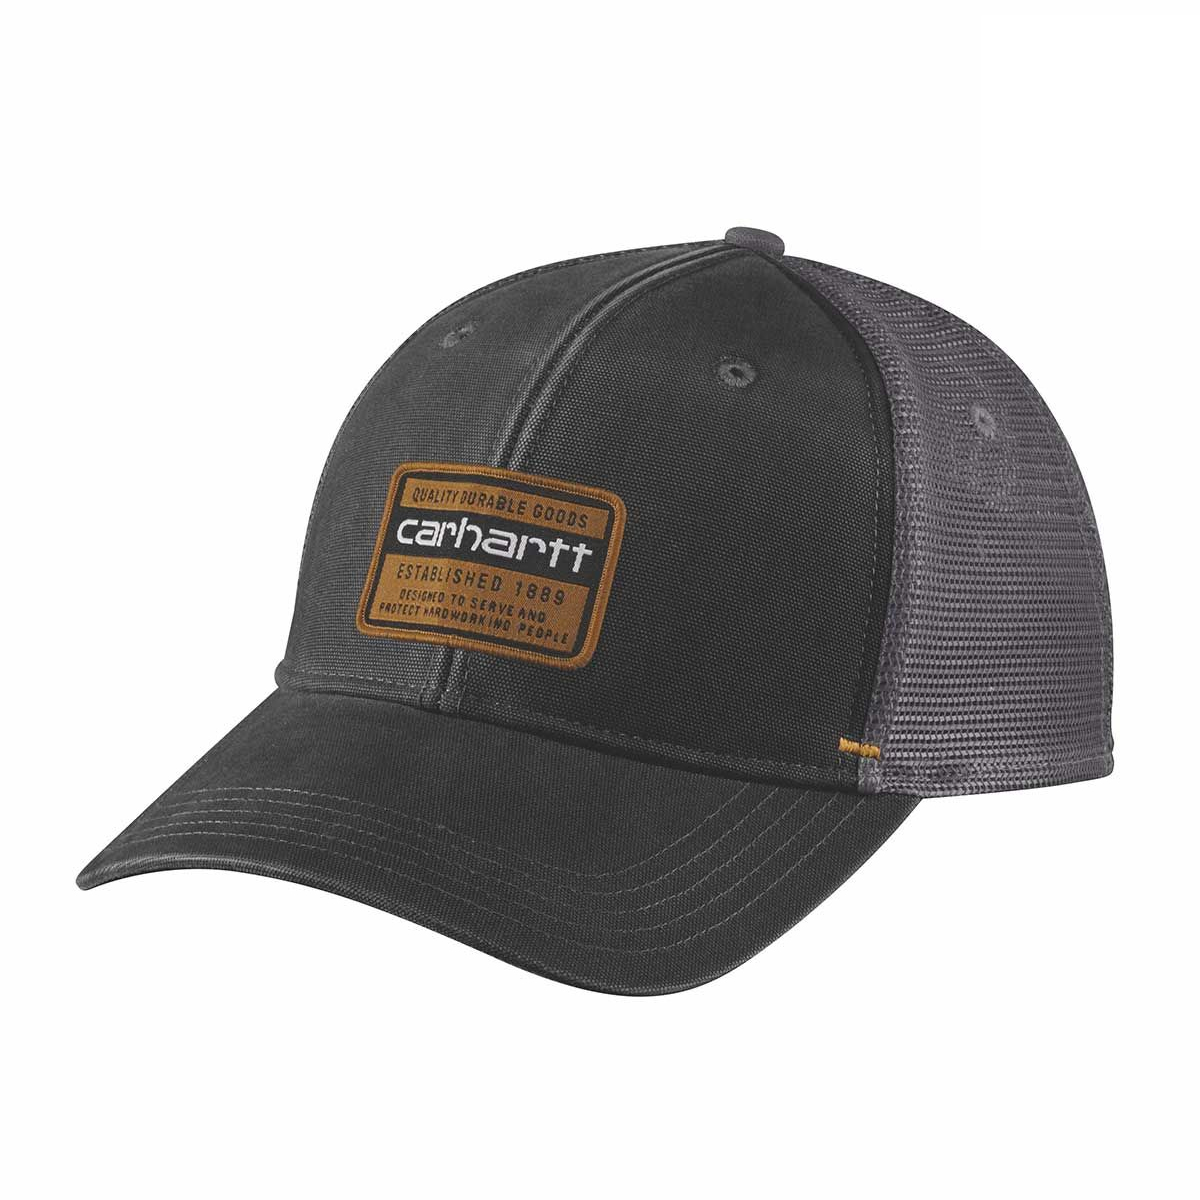 Men's Canvas Mesh Back Graphic Cap, Black, swatch